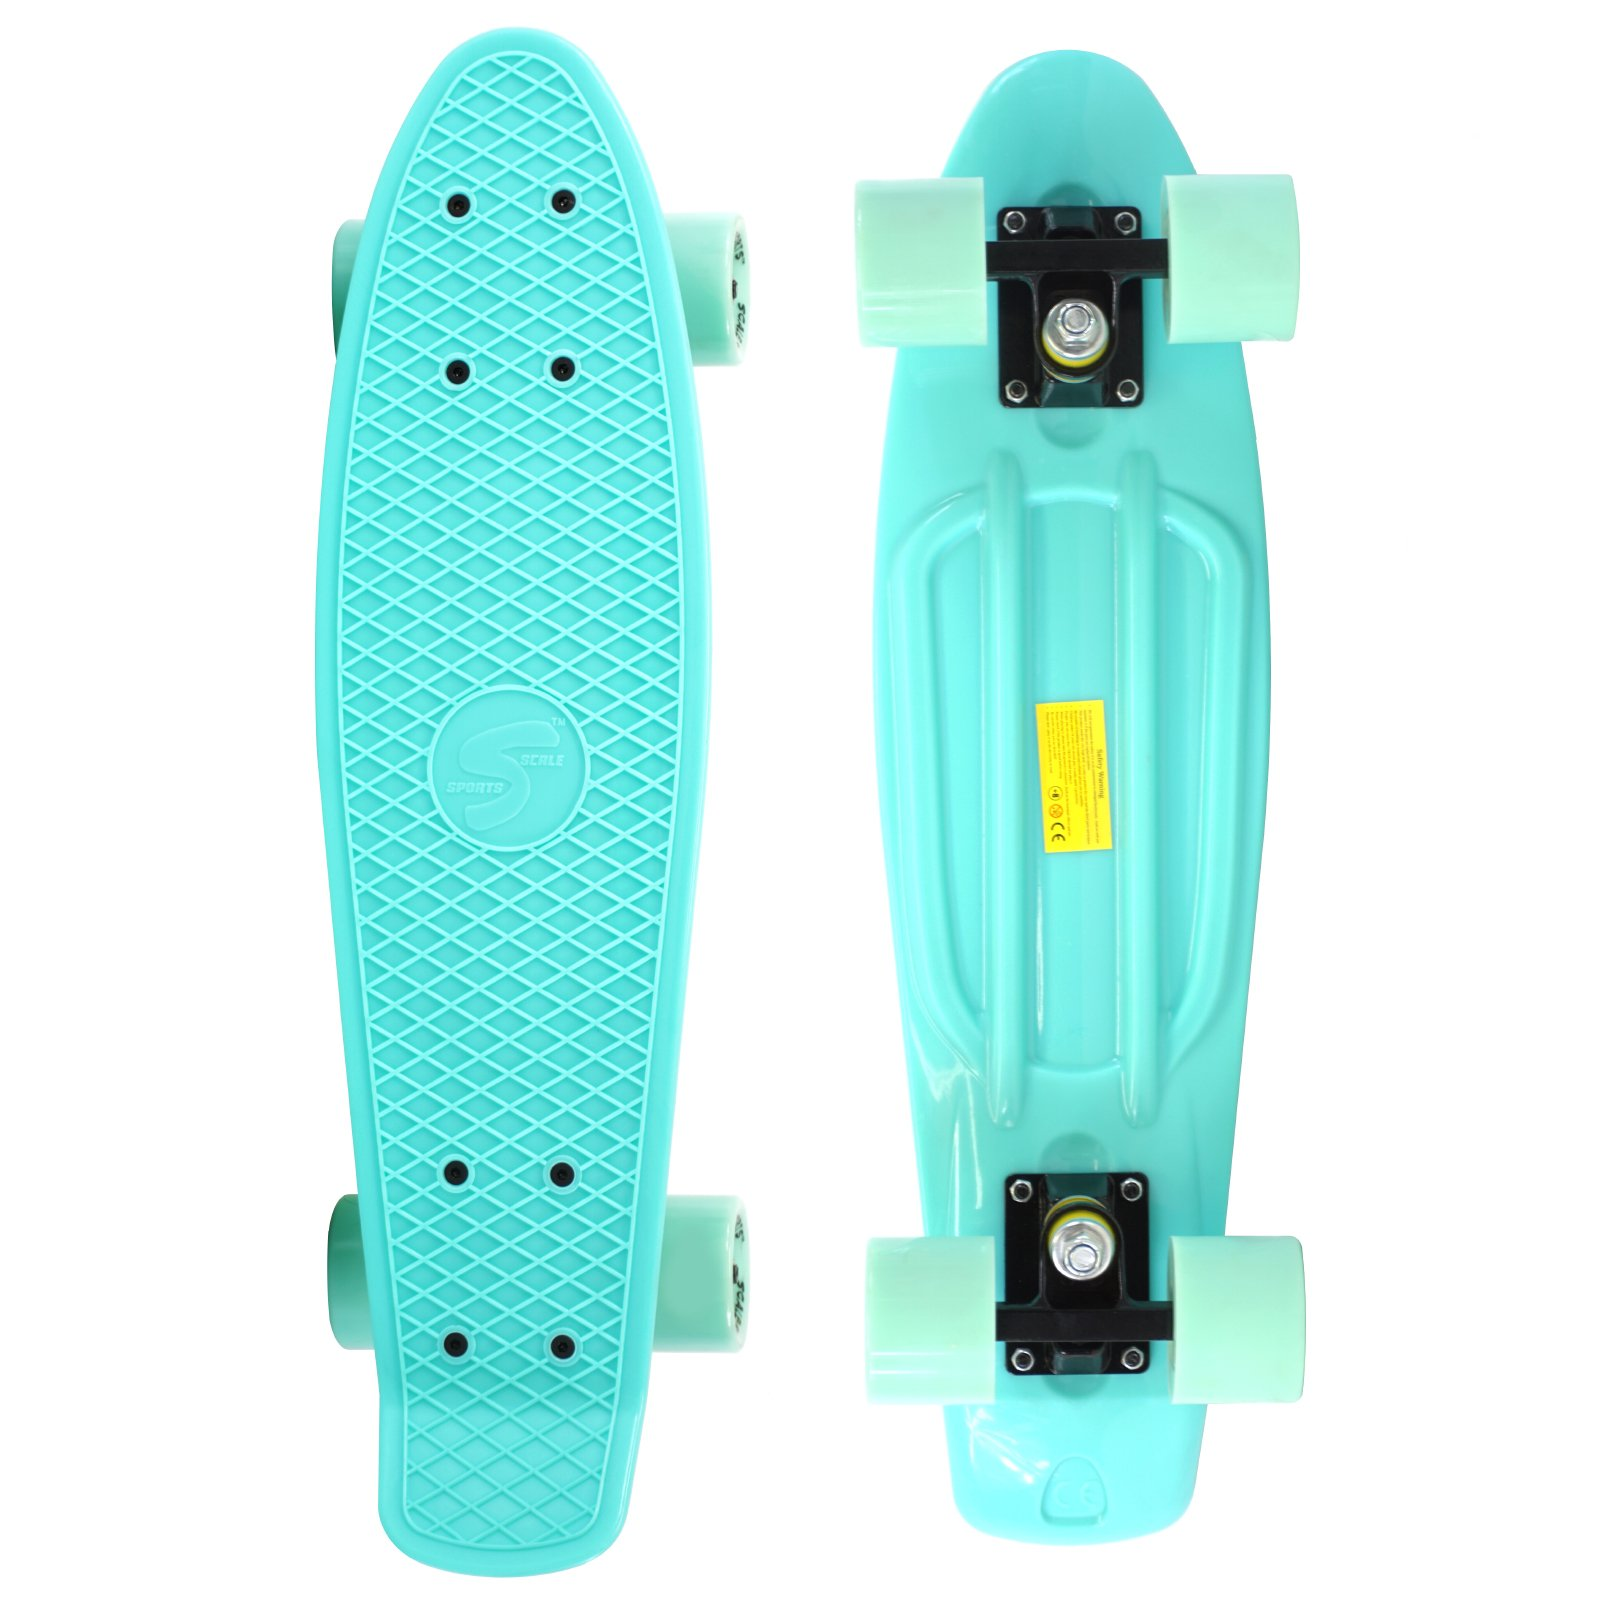 Scale Sports 22'' Skateboard Complete Pastel Street Retro Cruiser Classic Plastic Deck Mint by Scale Sports (Image #1)